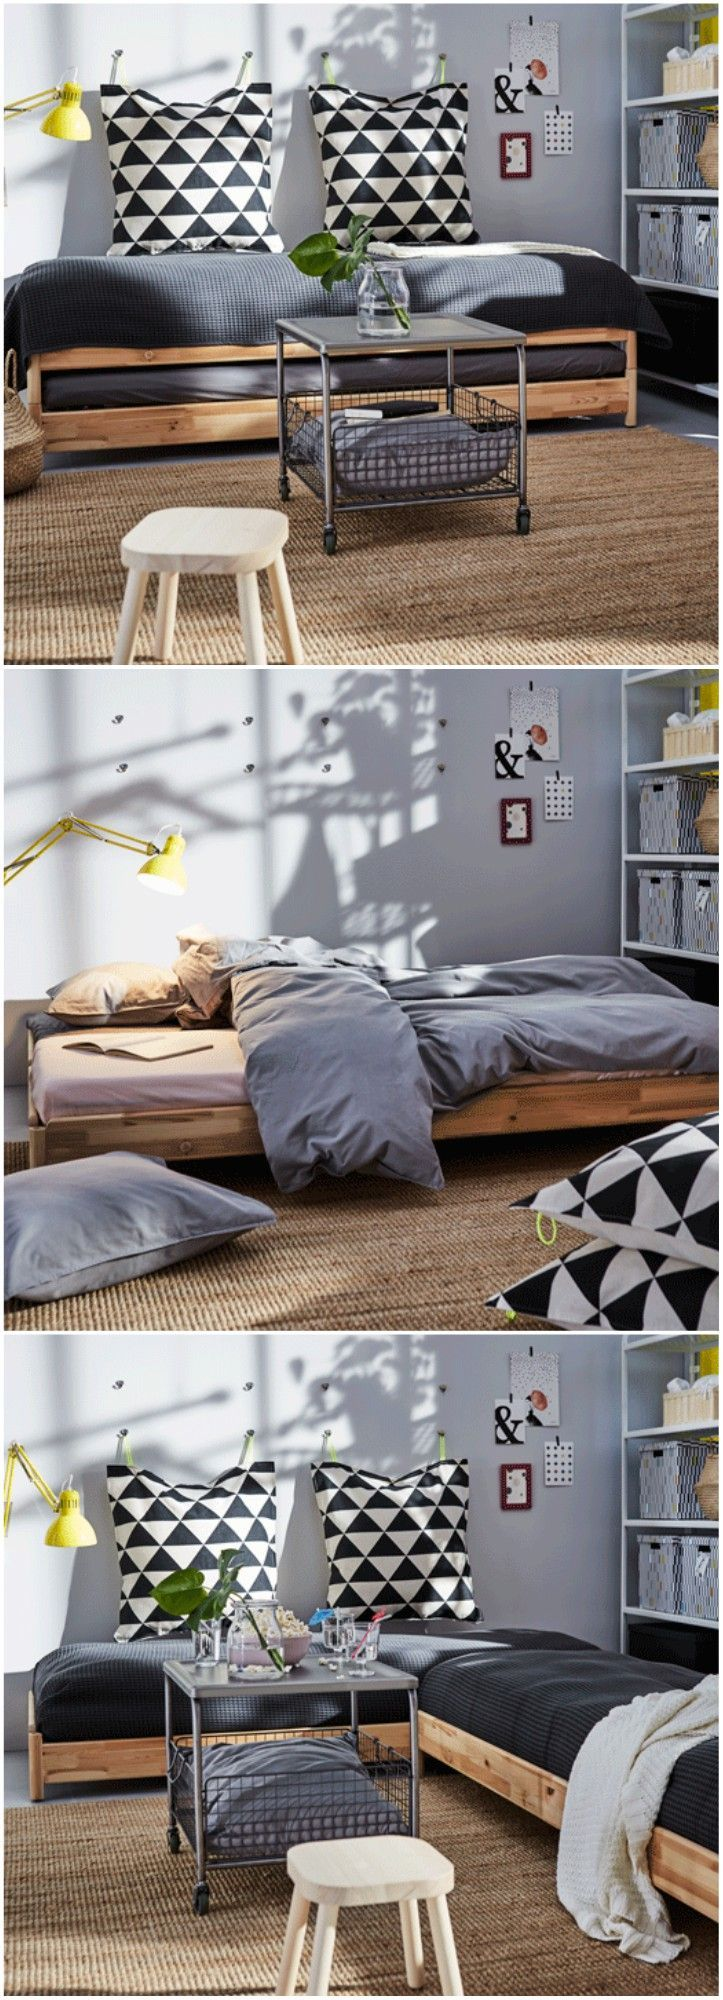 This Stackable Bed From Ikea Is A Brilliant Solution For Small Dwellings Sofa Bed For Small Spaces Sofas For Small Spaces Ikea Bed